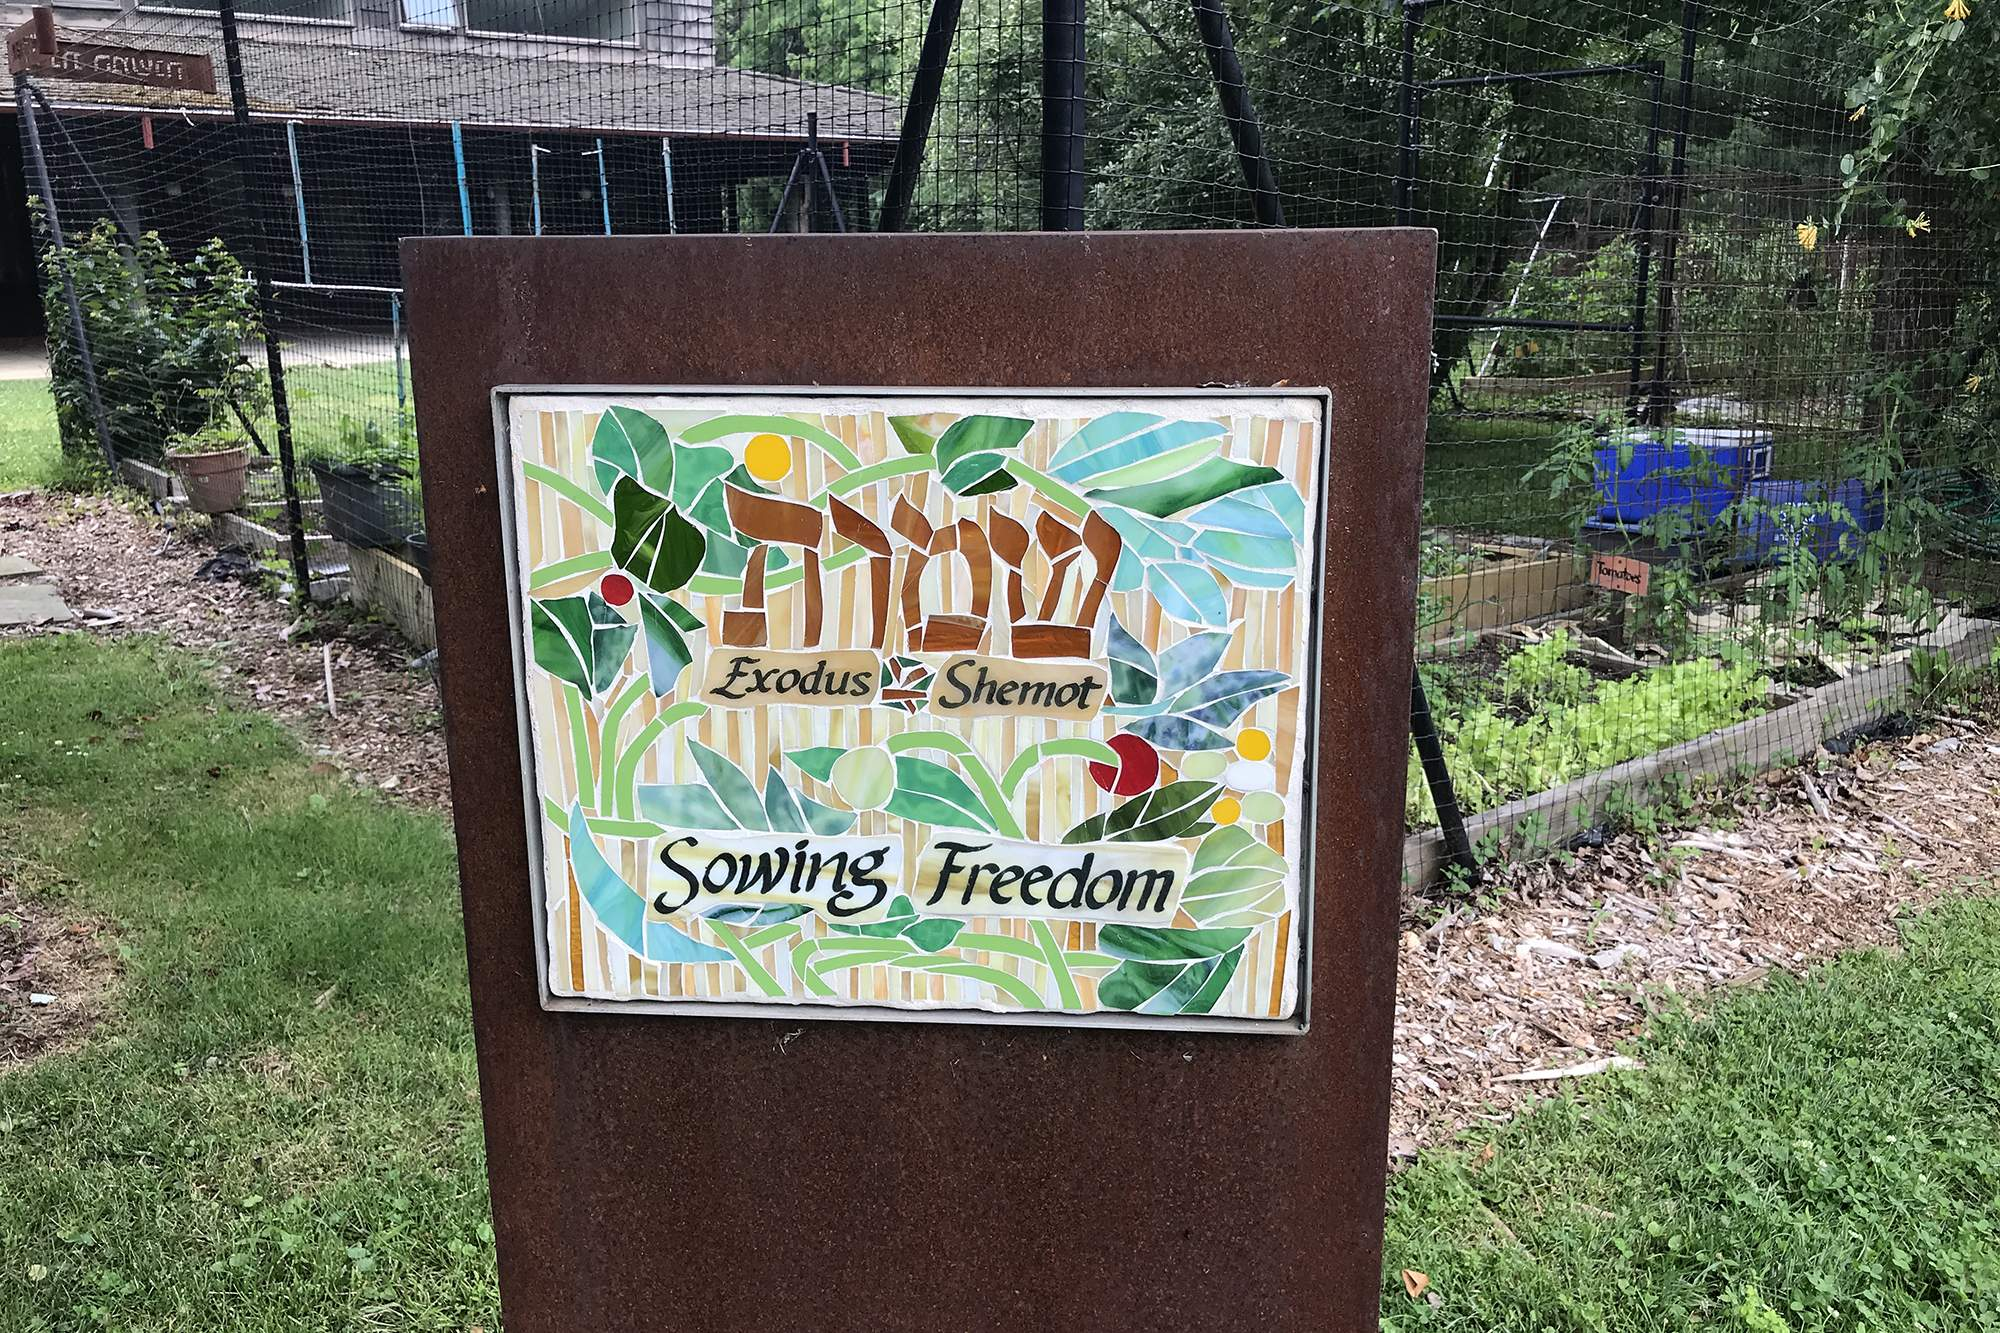 Green Tikkun/Environment